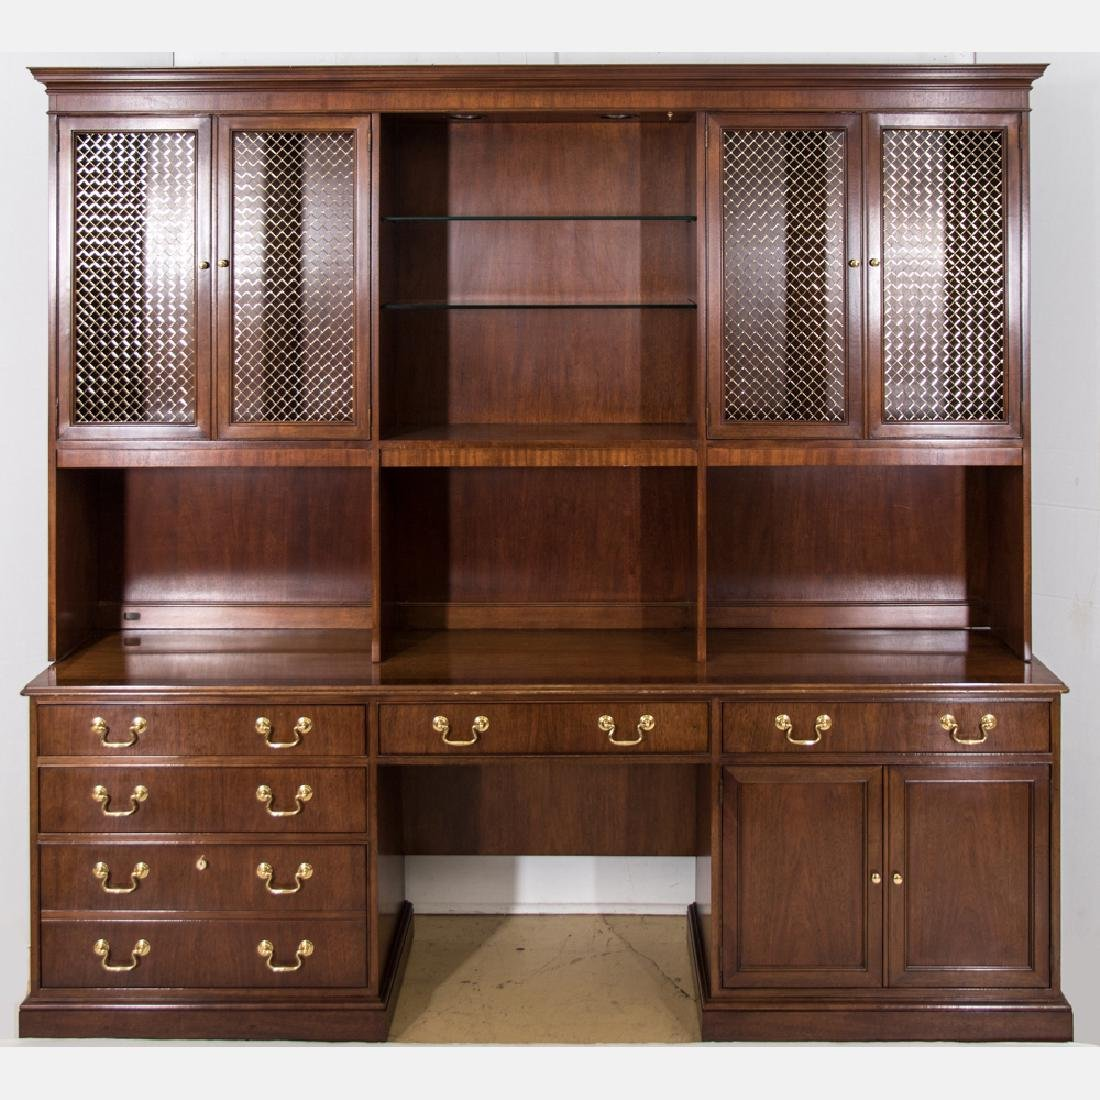 A Baker Furniture Georgian Style Walnut and Brass